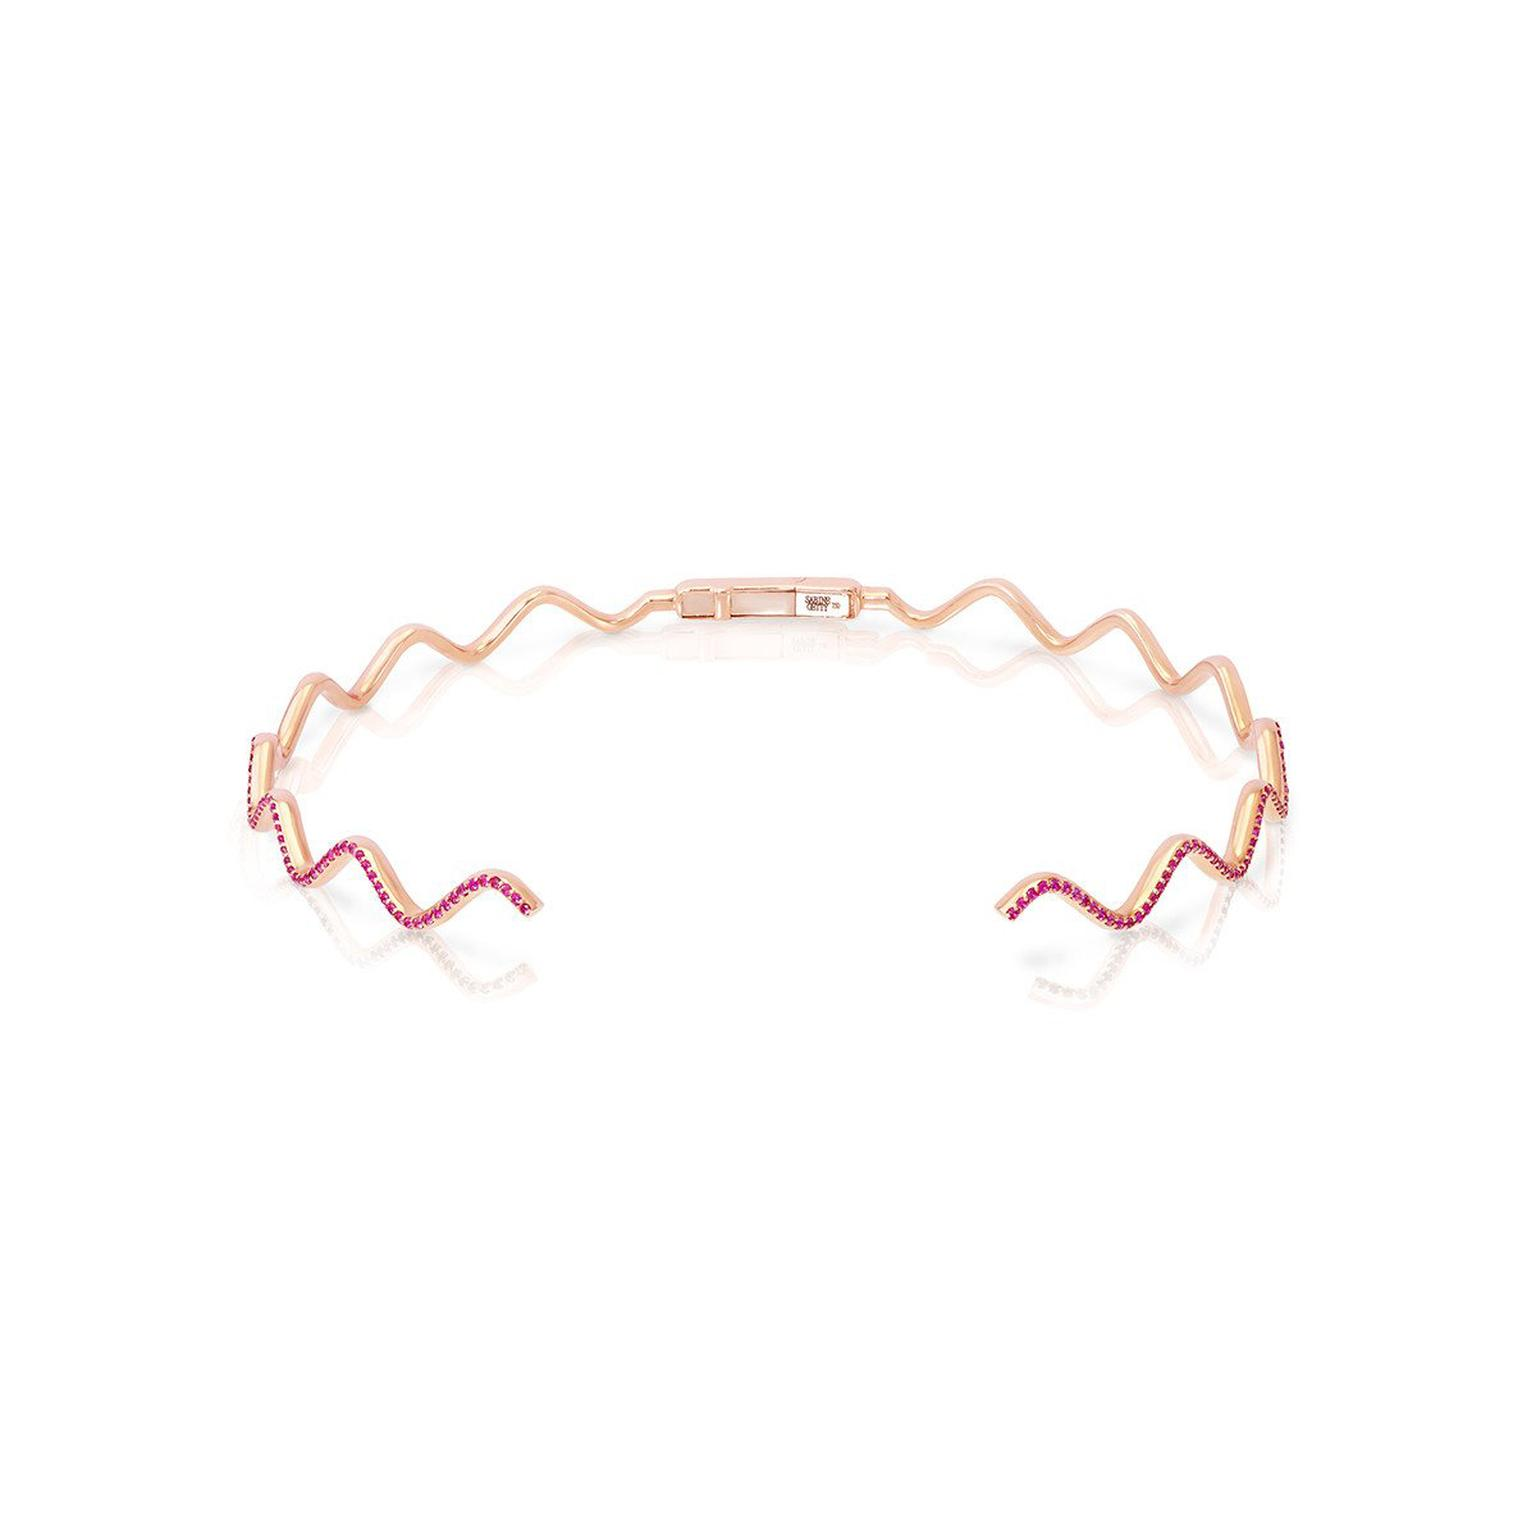 Sabine Getty Baby Memphis pink sapphire Wave choker in pink gold